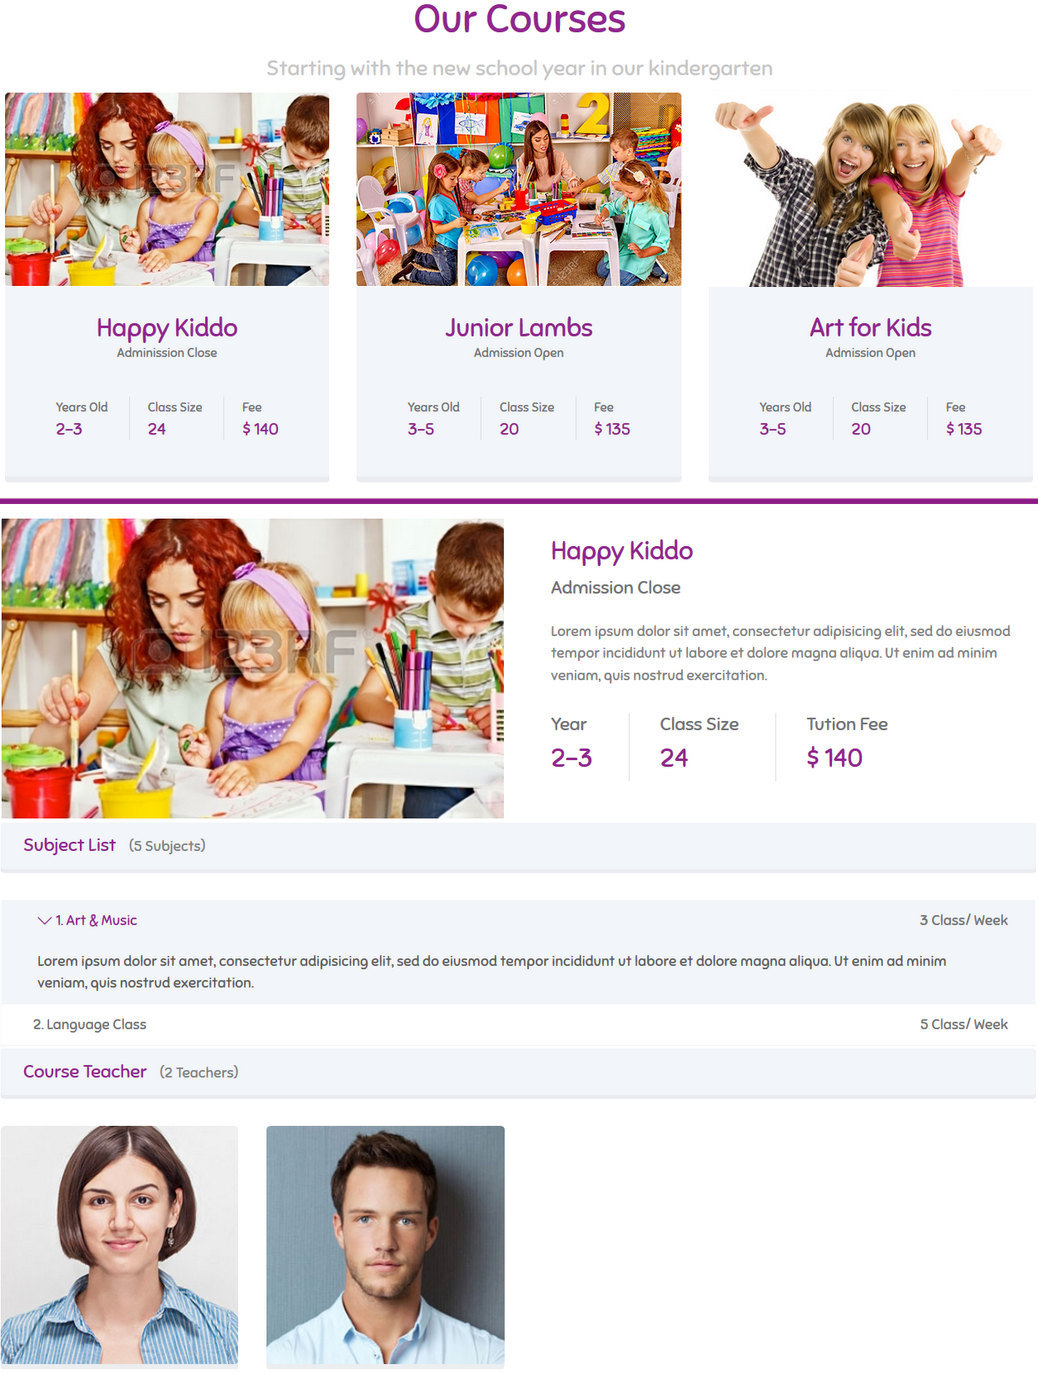 courses tool for kids - joomla component